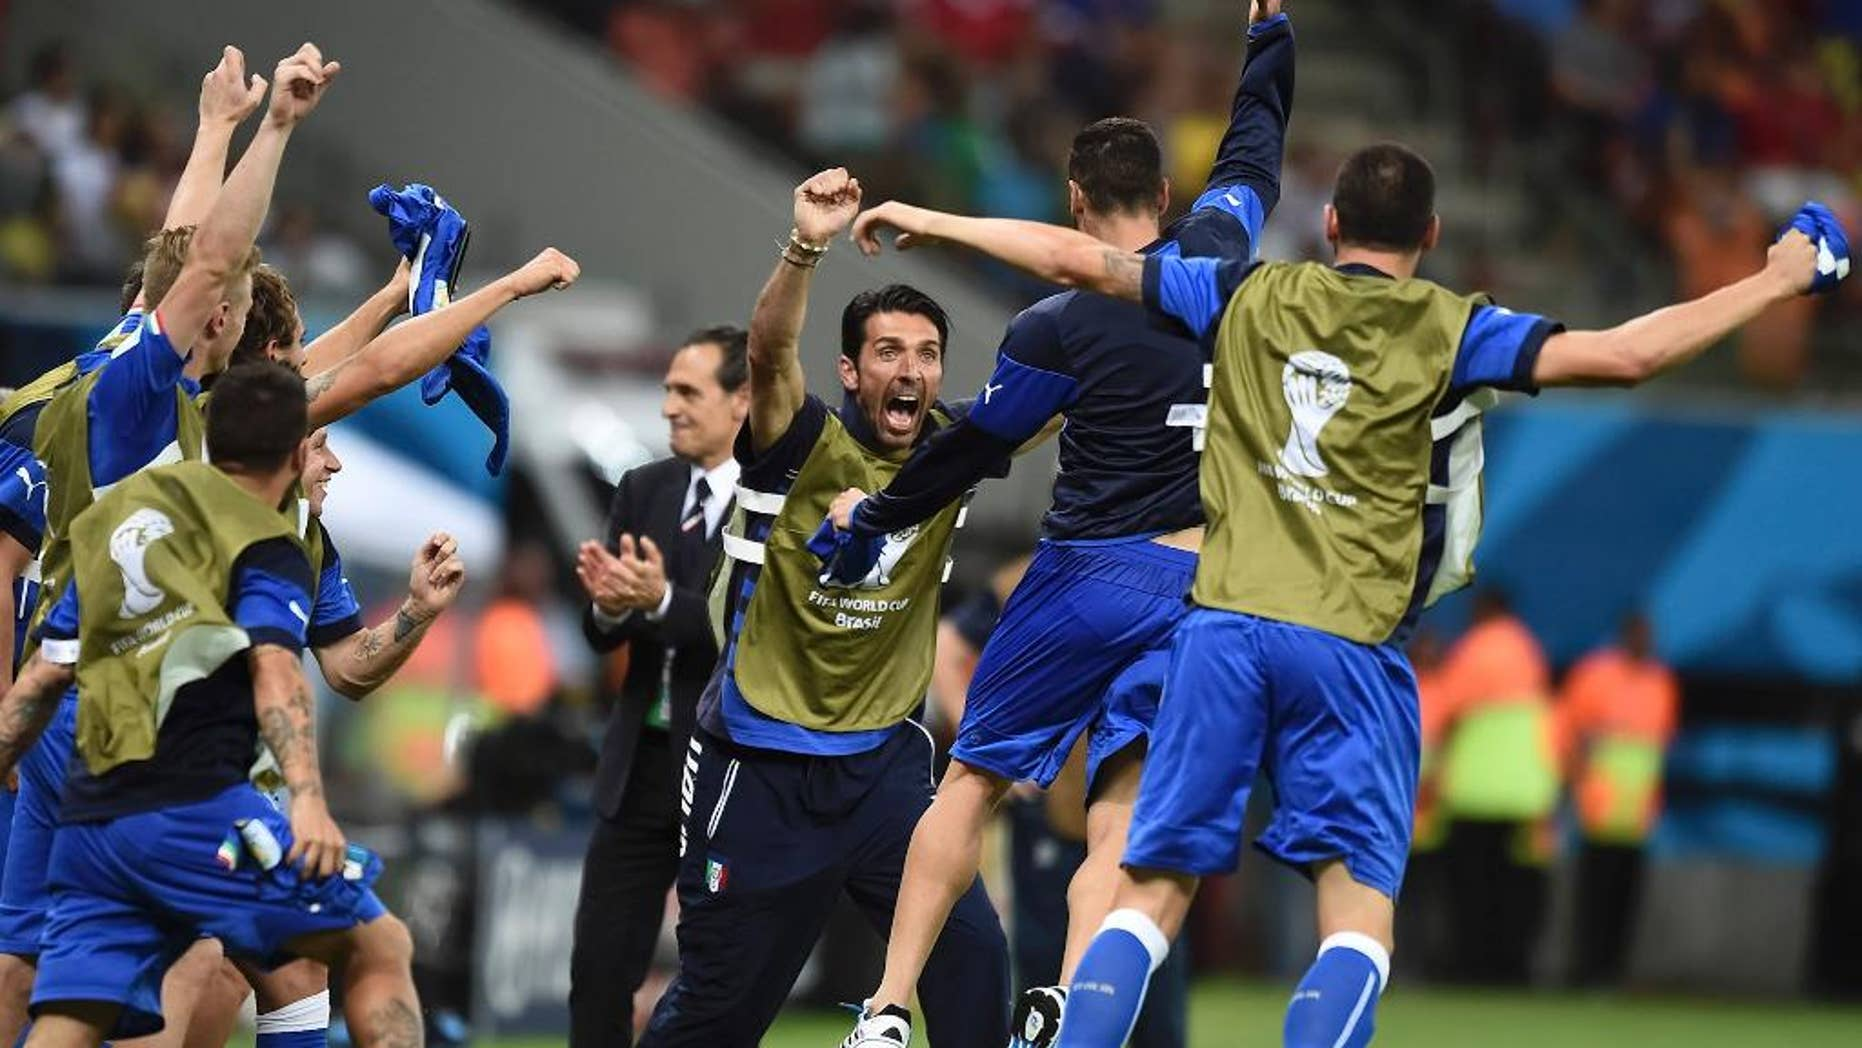 Italian goalie Gianluigi Buffon, face to camera, and coach Cesare Prandelli, center, celebrate with the team after the group D World Cup soccer match between England and Italy at the Arena da Amazonia in Manaus, Brazil, Saturday, June 14, 2014. Italy won the match 2-1. (AP Photo/Fabio Ferrari)